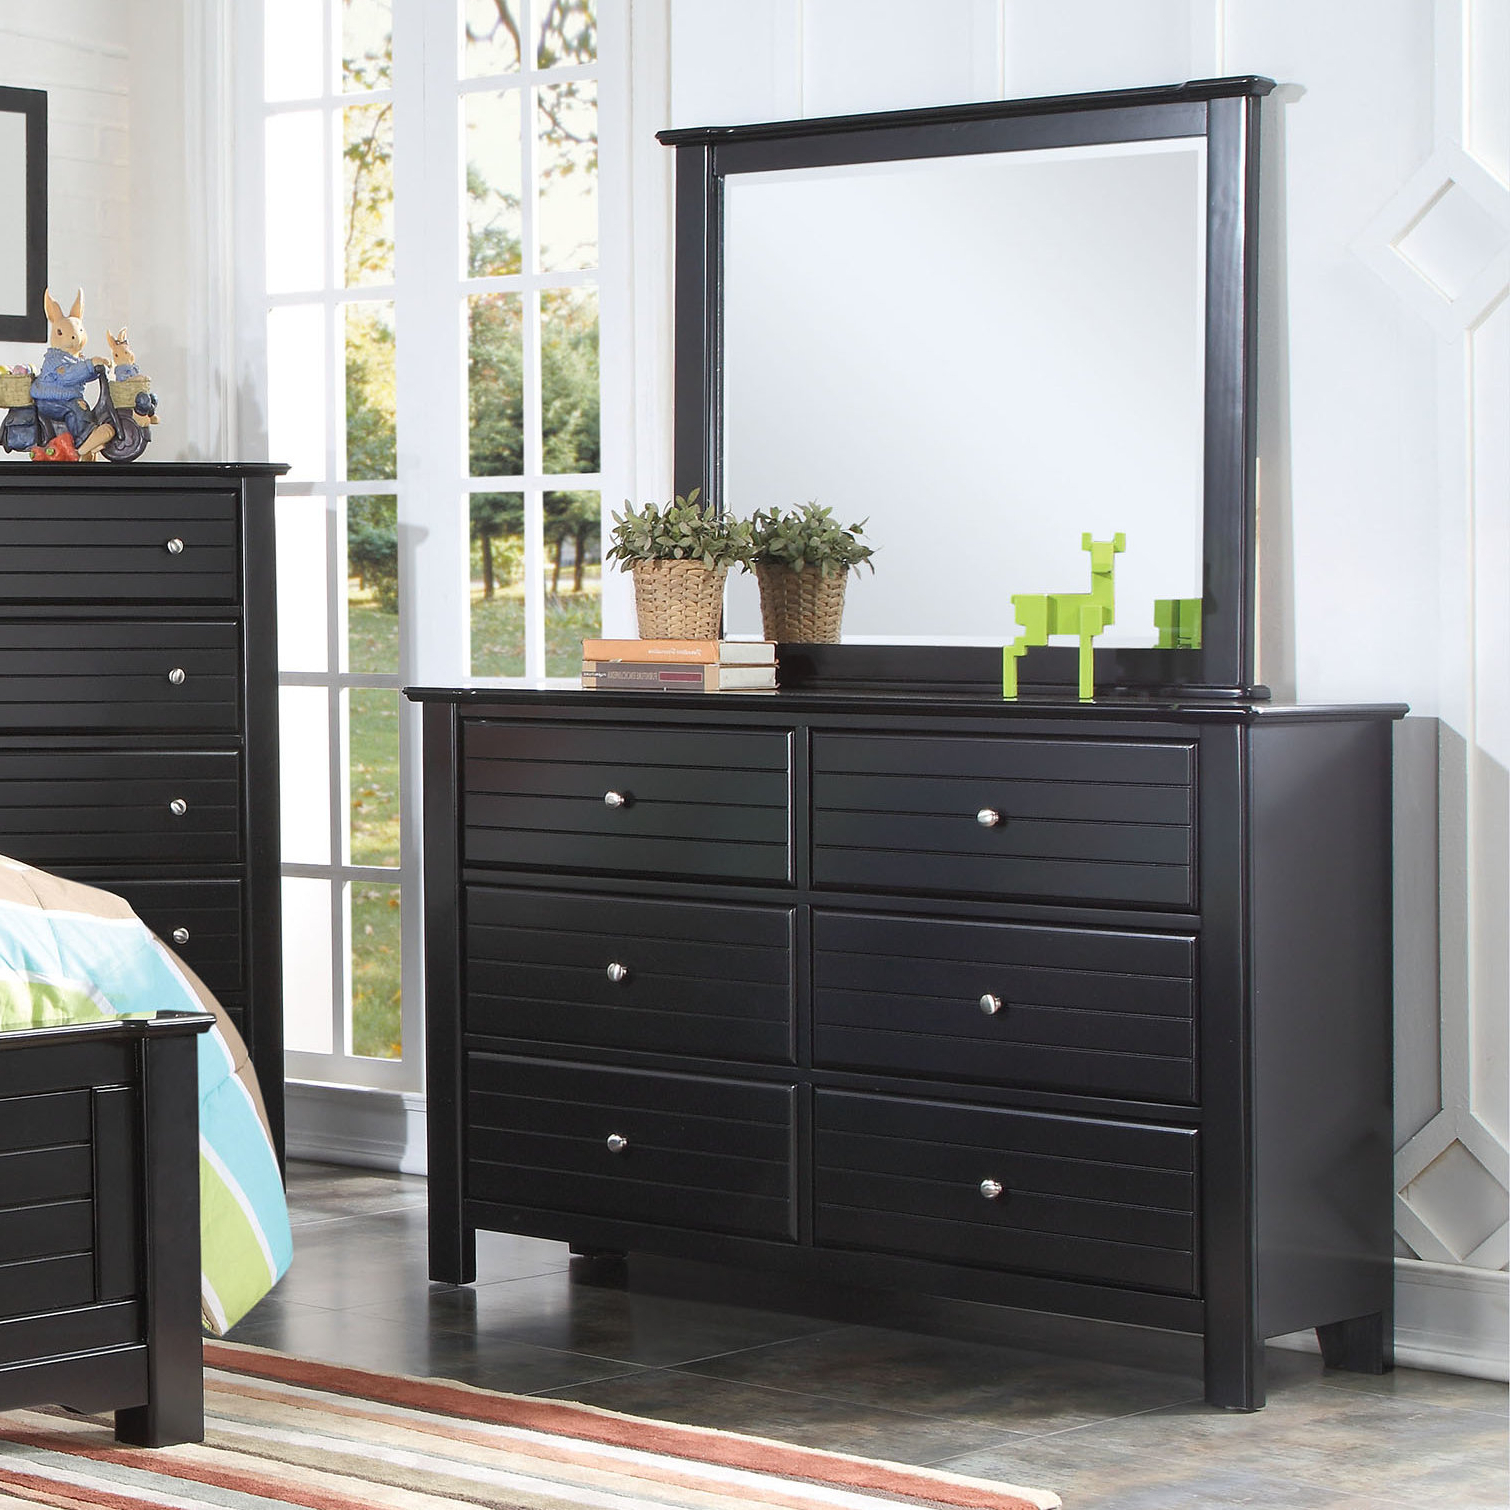 Saylor Wall Mirrors Intended For Most Current Saylor 6 Drawer Double Dresser With Mirror (View 20 of 20)